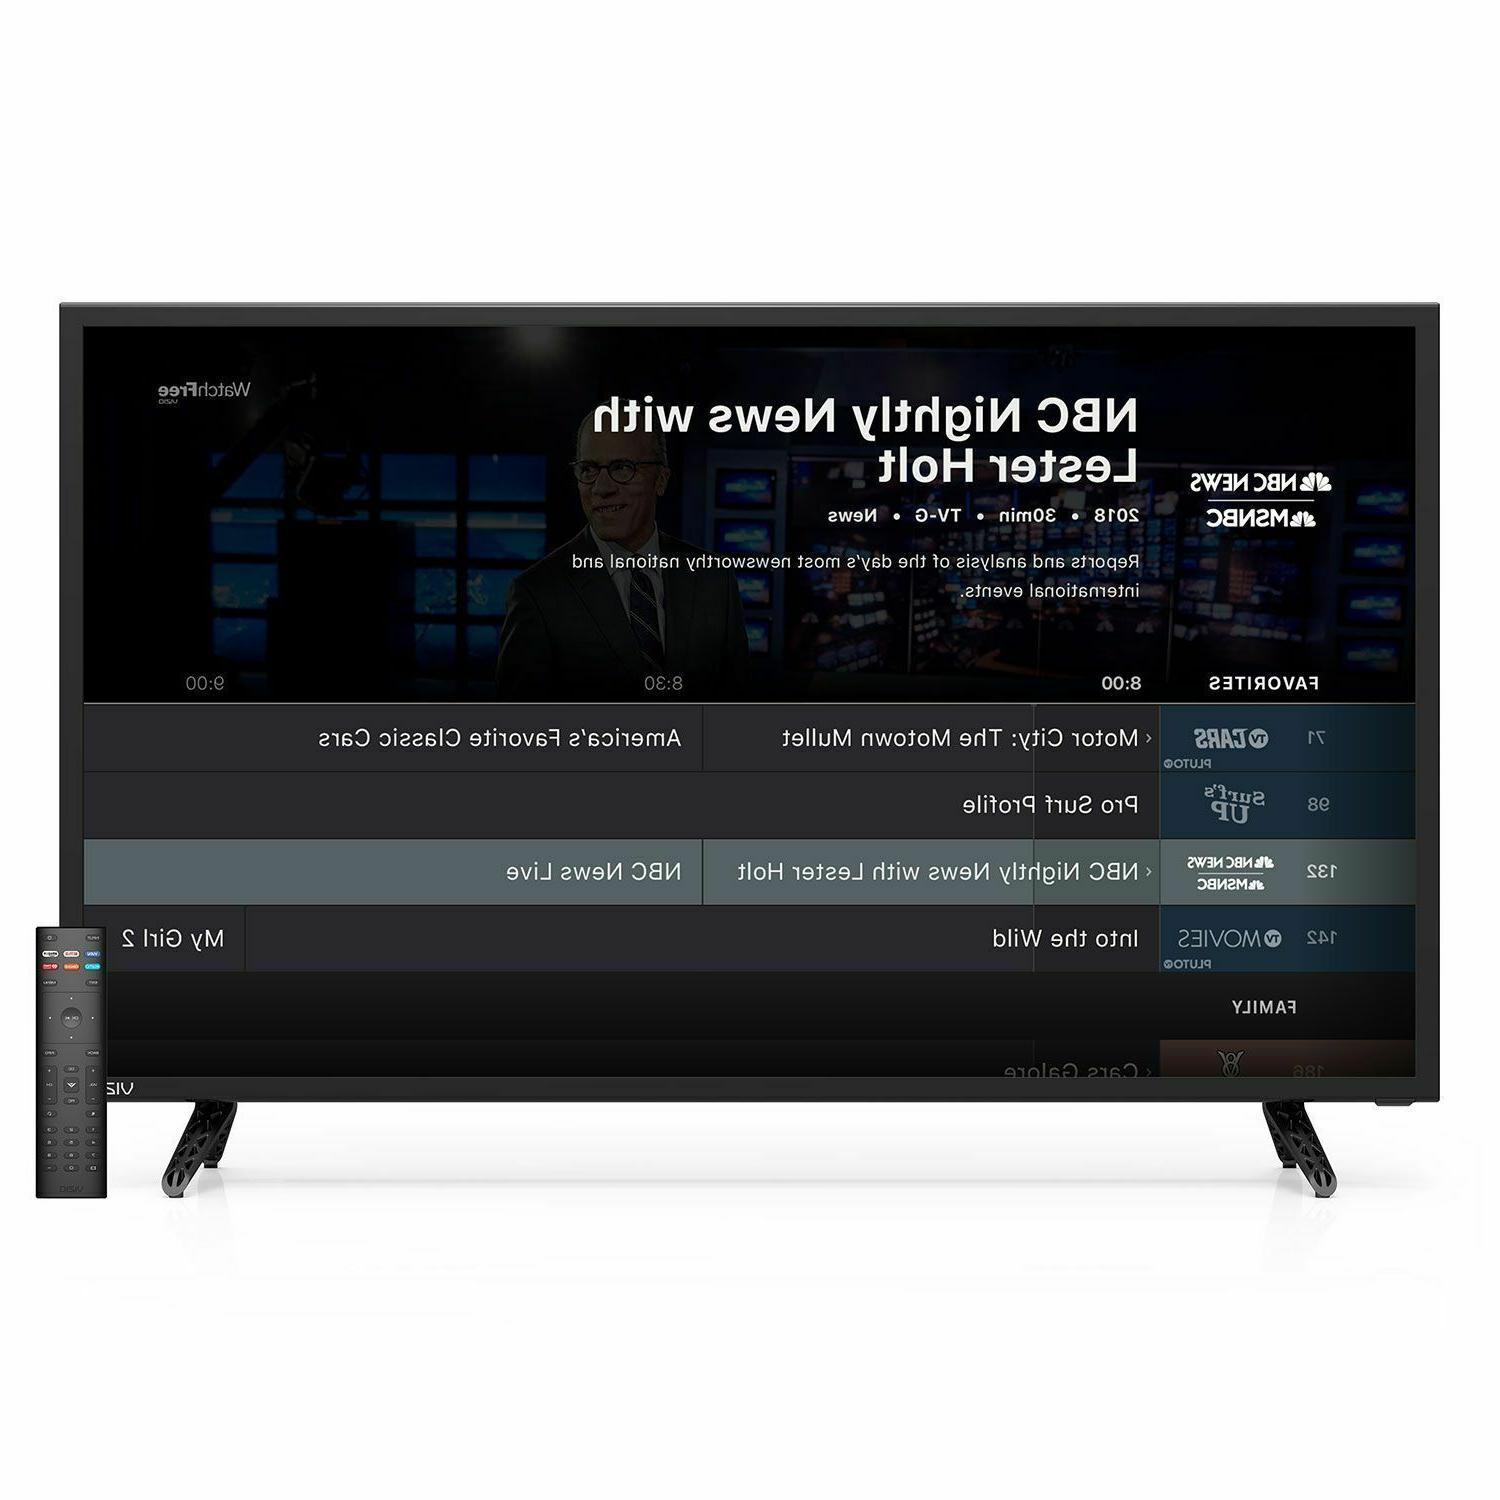 32inch VIZIO LED 1080p HDTV with Wi-Fi built-in